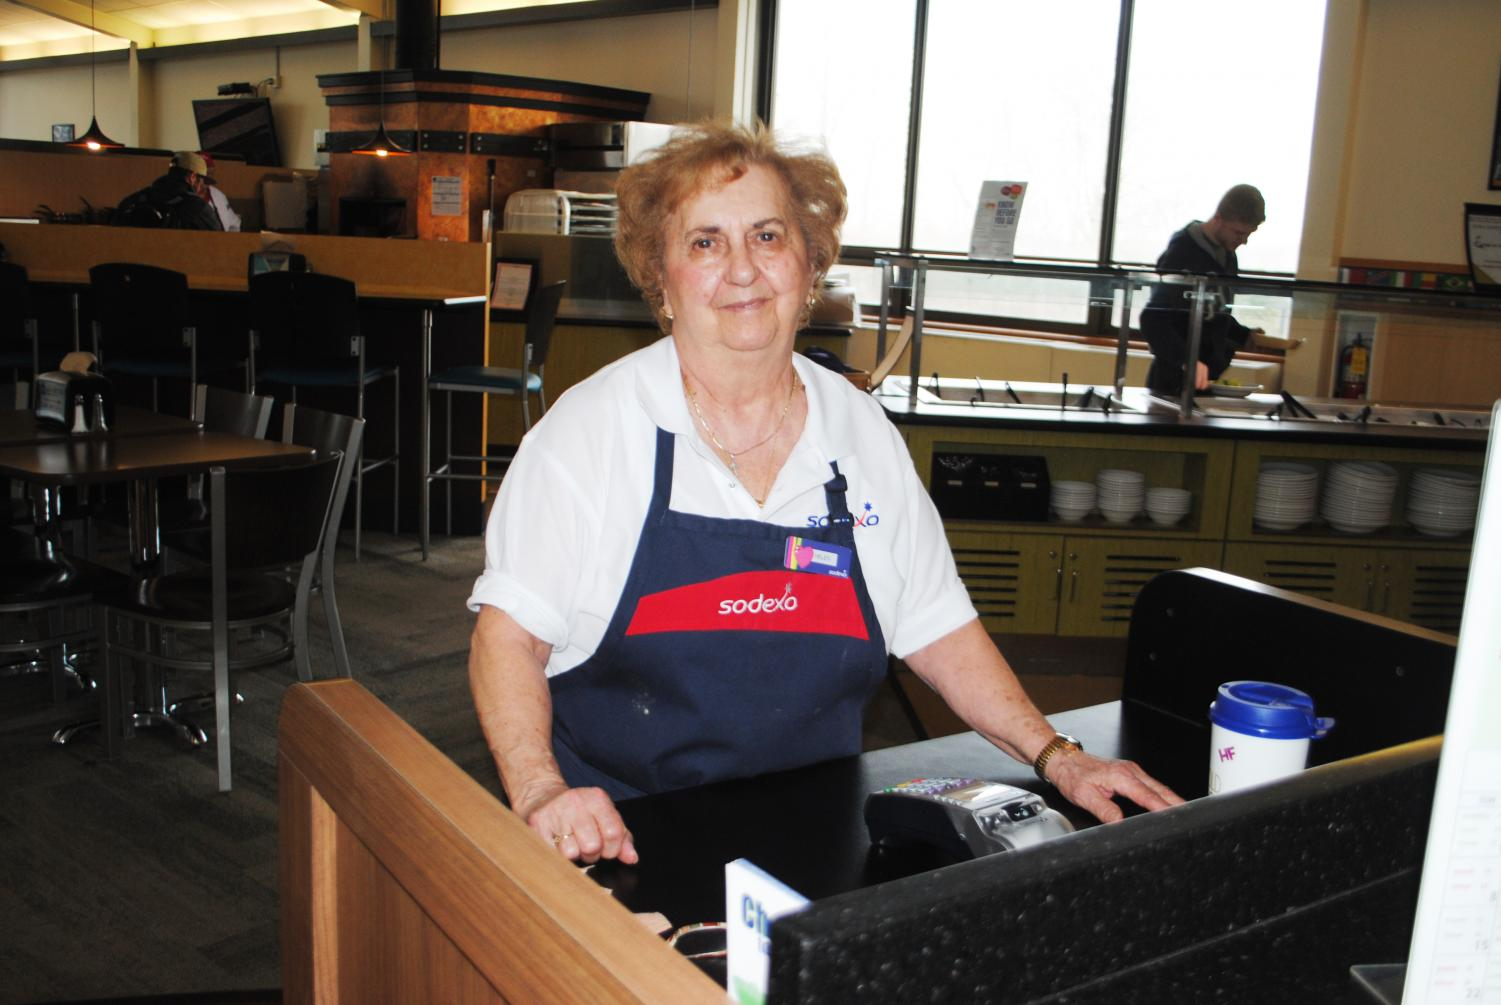 Sodexo worker Helen Ferrante stands, ready with a smile, to swipe students into the Student Union dining hall.